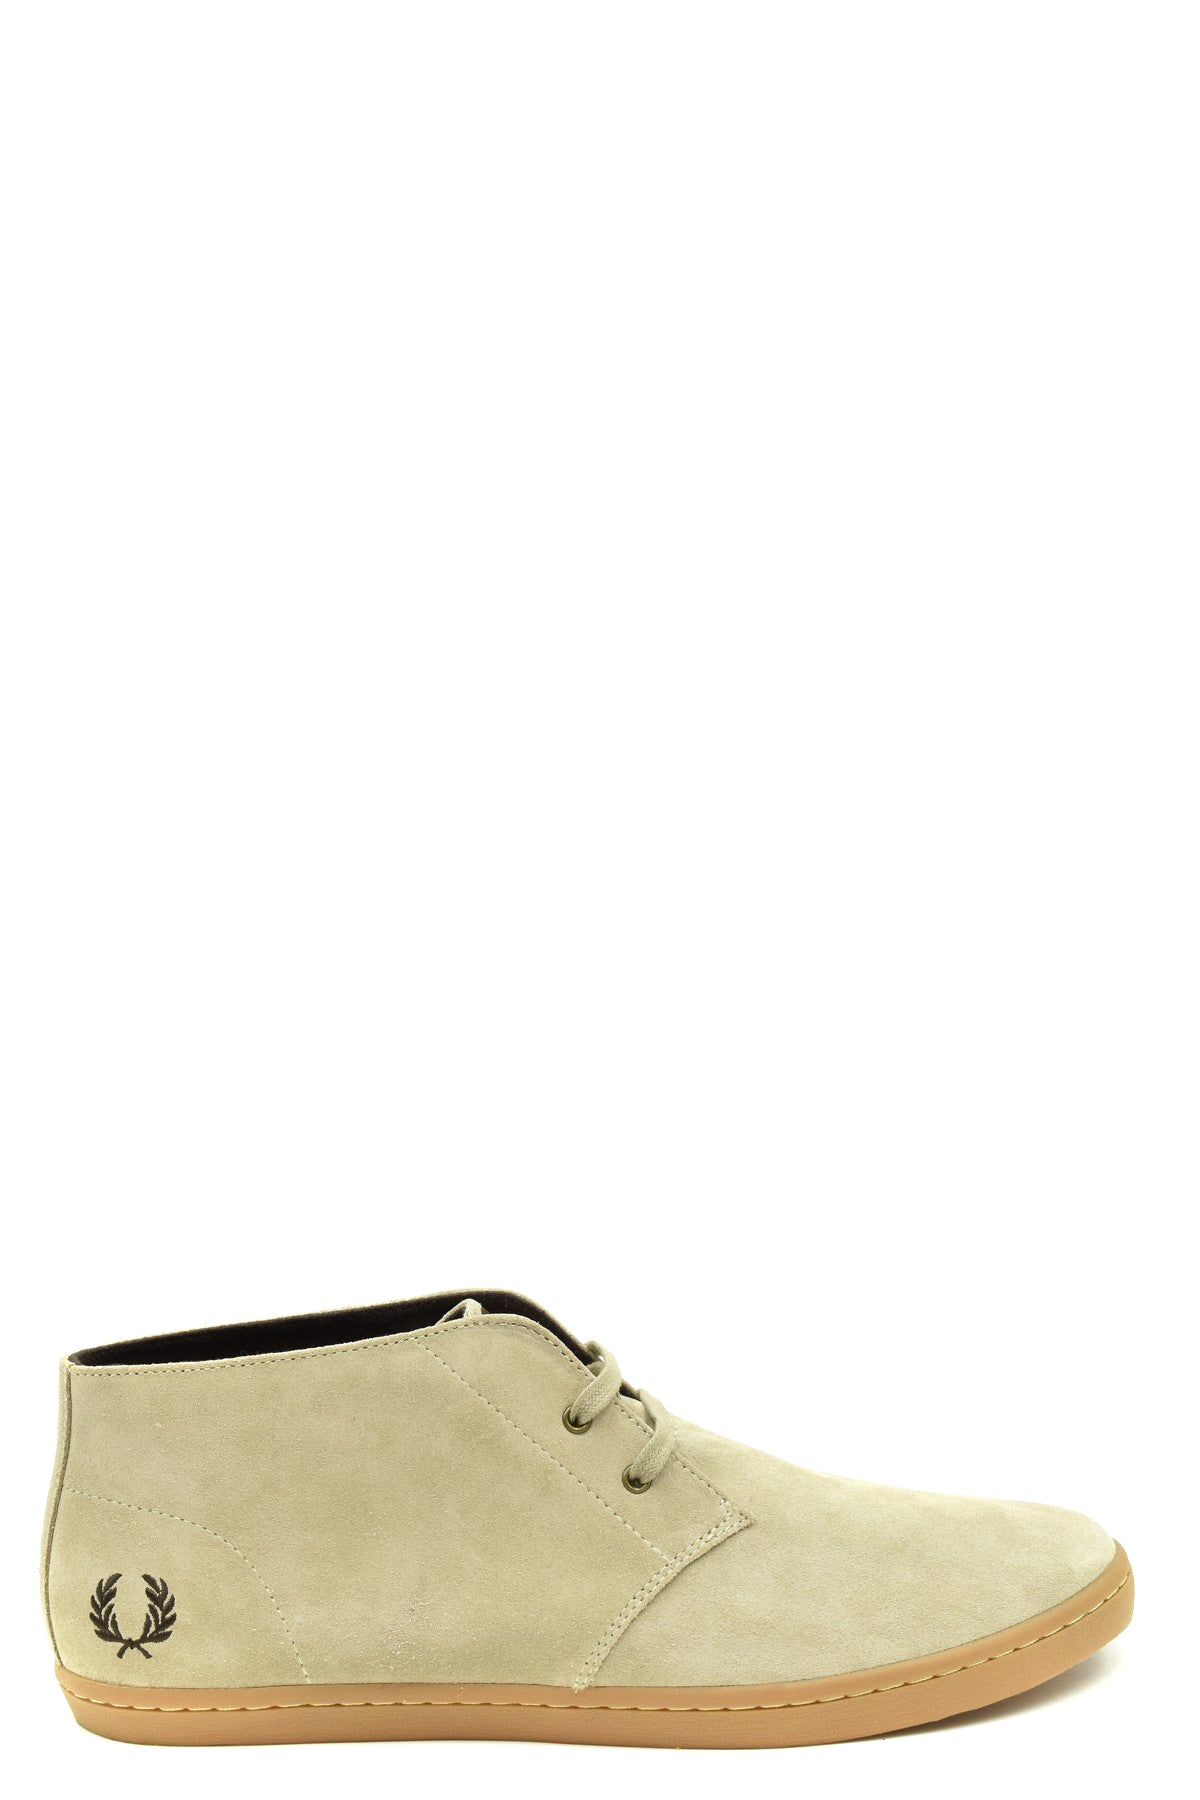 Shoes Fred Perry-Men's Fashion - Men's Shoes - Men's Boots-6-Product Details Terms: New With LabelMain Color: BeigeType Of Accessory: BootsSeason: Fall / WinterMade In: VietnamGender: ManSize: UkComposition: Chamois 100%Year: 2019Manufacturer Part Number: B7400-Keyomi-Sook